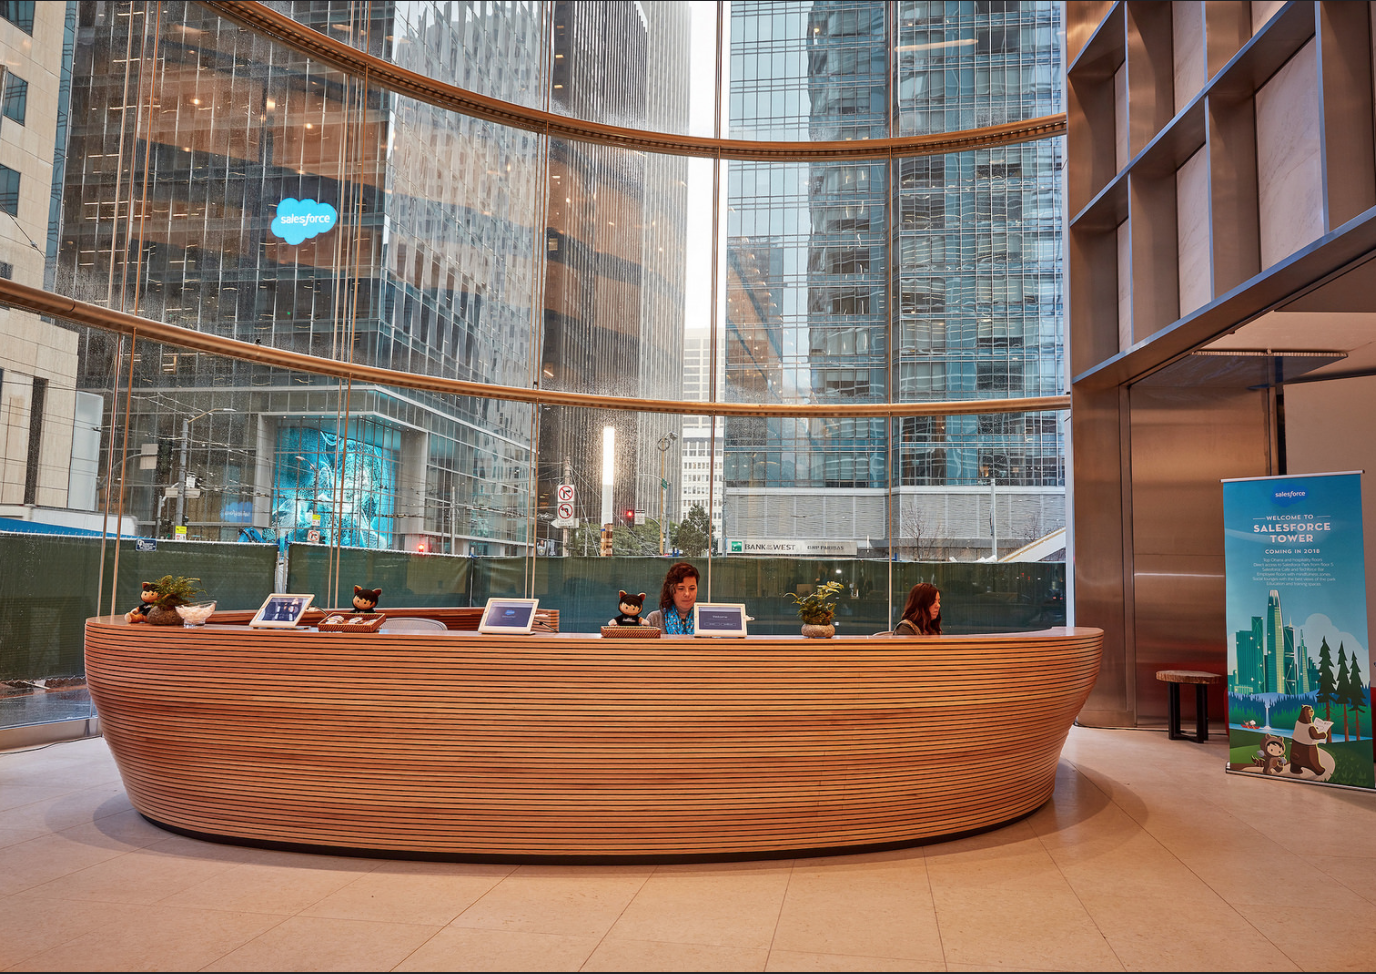 A Look Inside Salesforce Tower - Salesforce Blog